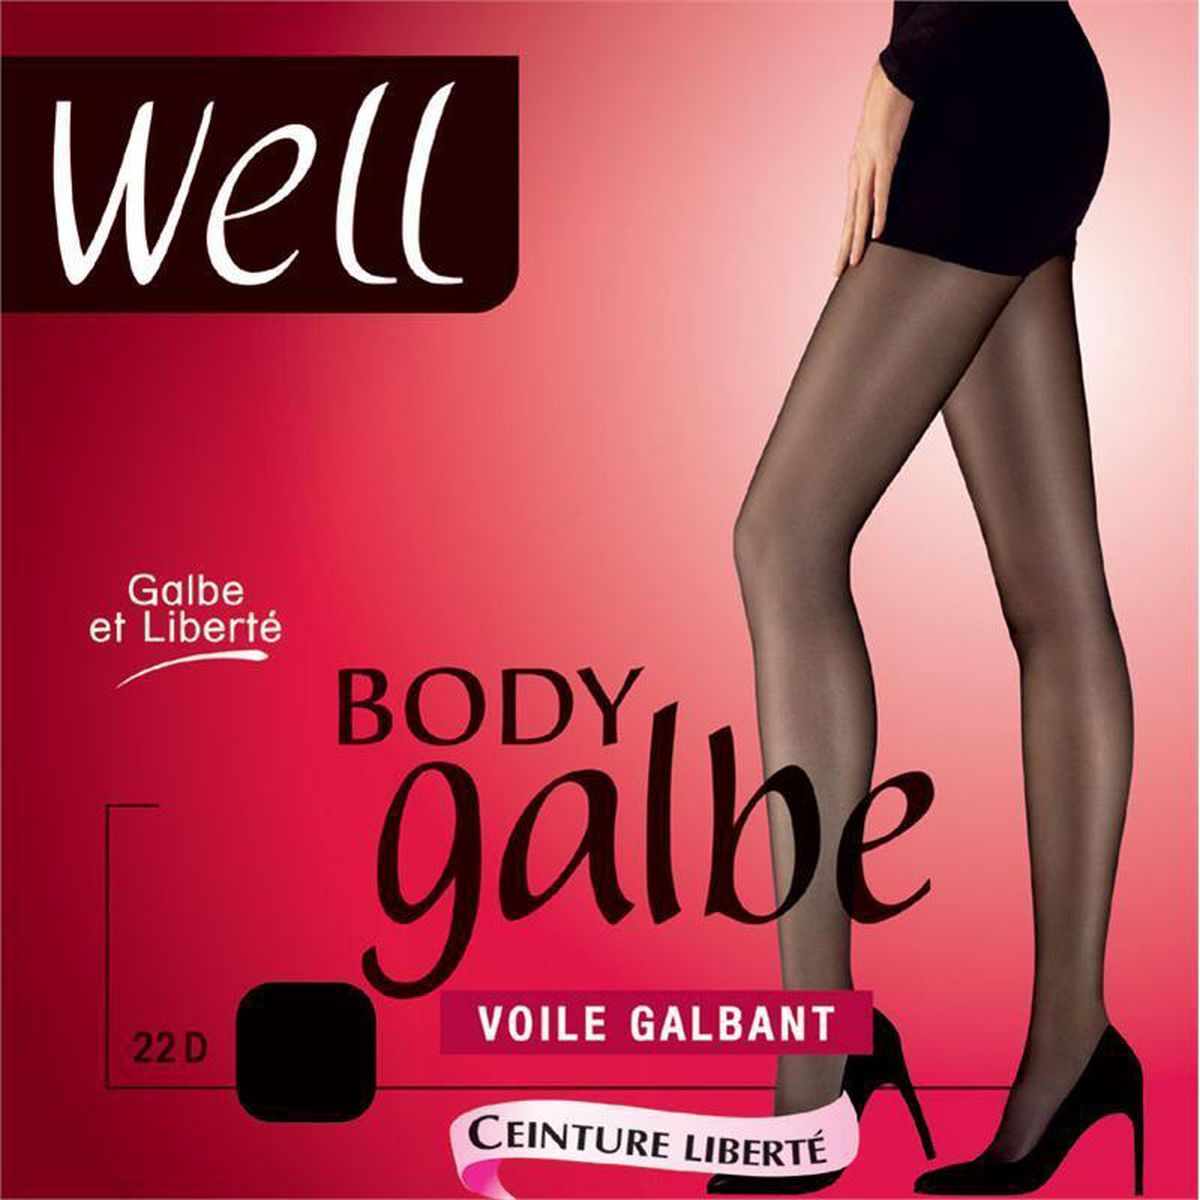 Well Collant Body Galbe voile galbant Noir 85046fece55